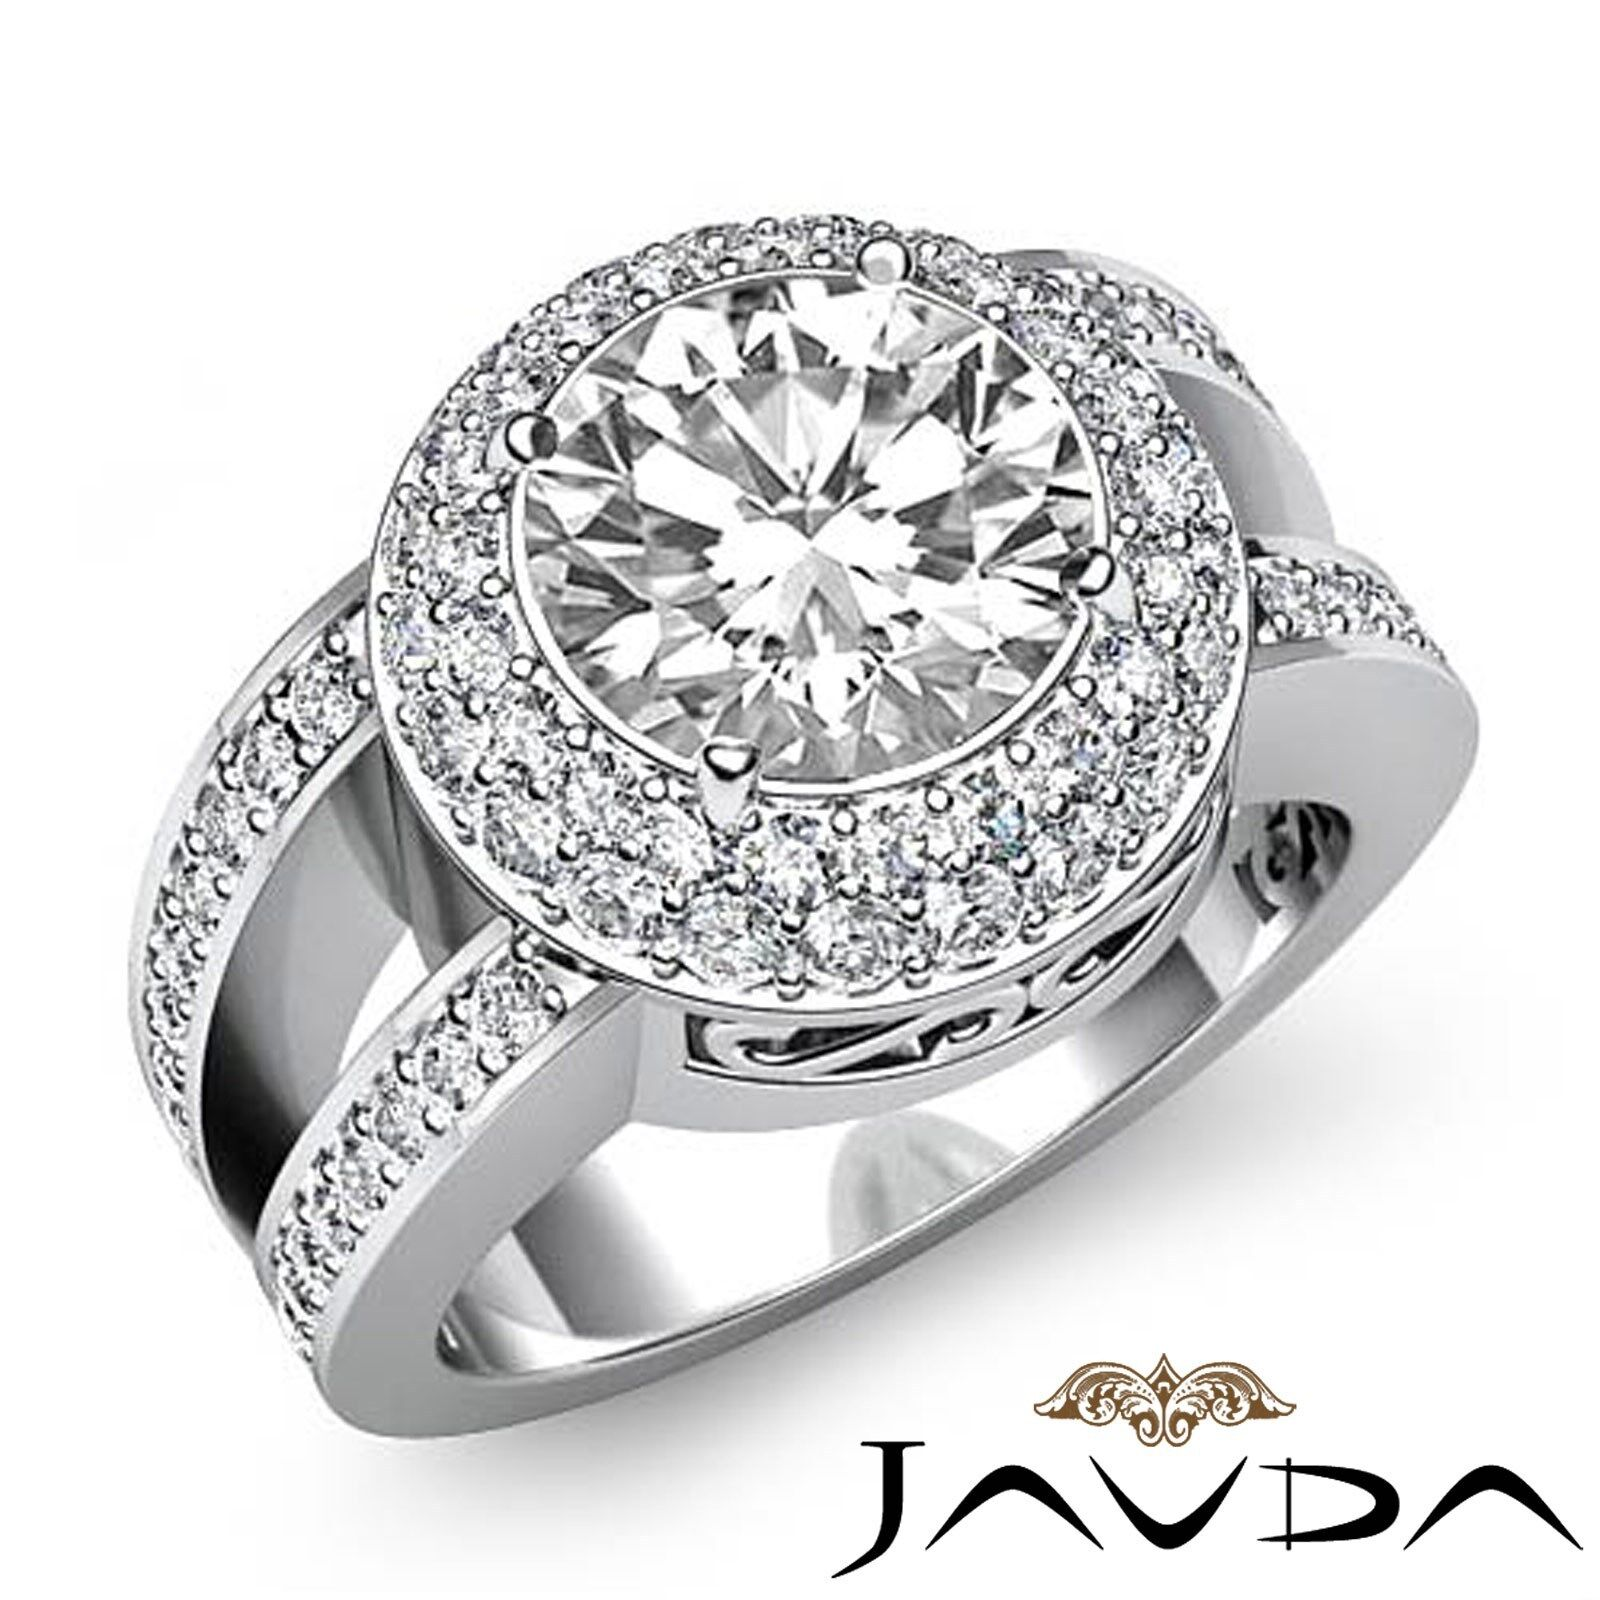 Double Halo Split Shank Round Diamond Engagement Pave Set Ring GIA H VS2 2.85Ct